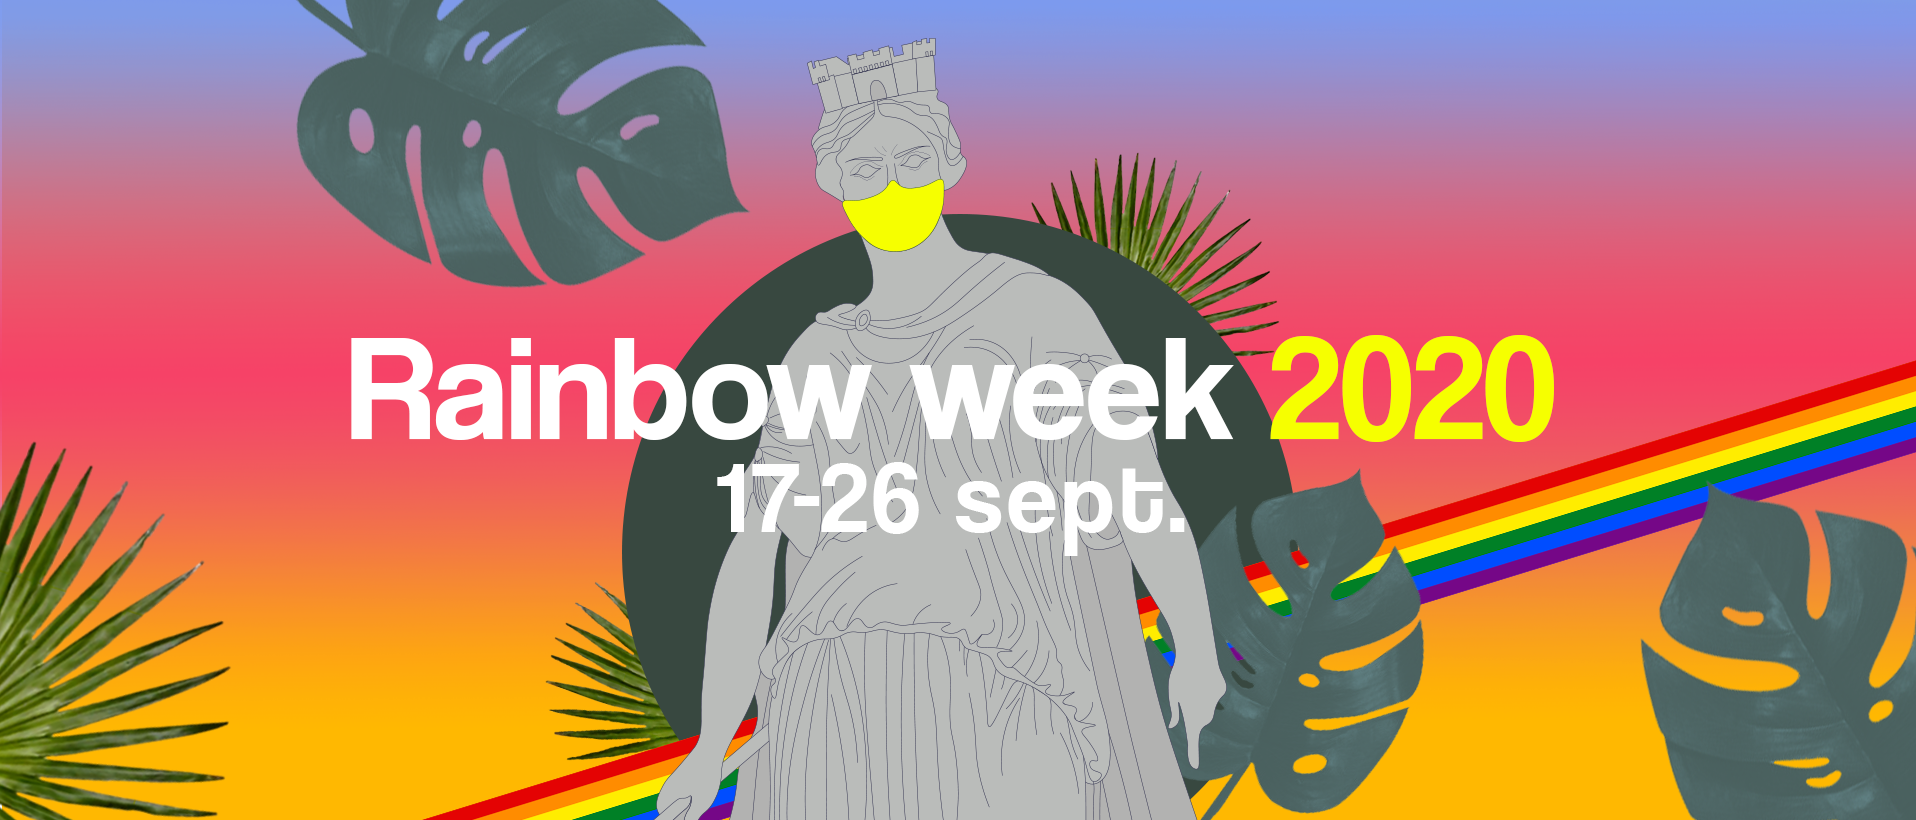 pride lille 2020 covid annulation rainbow week programmation